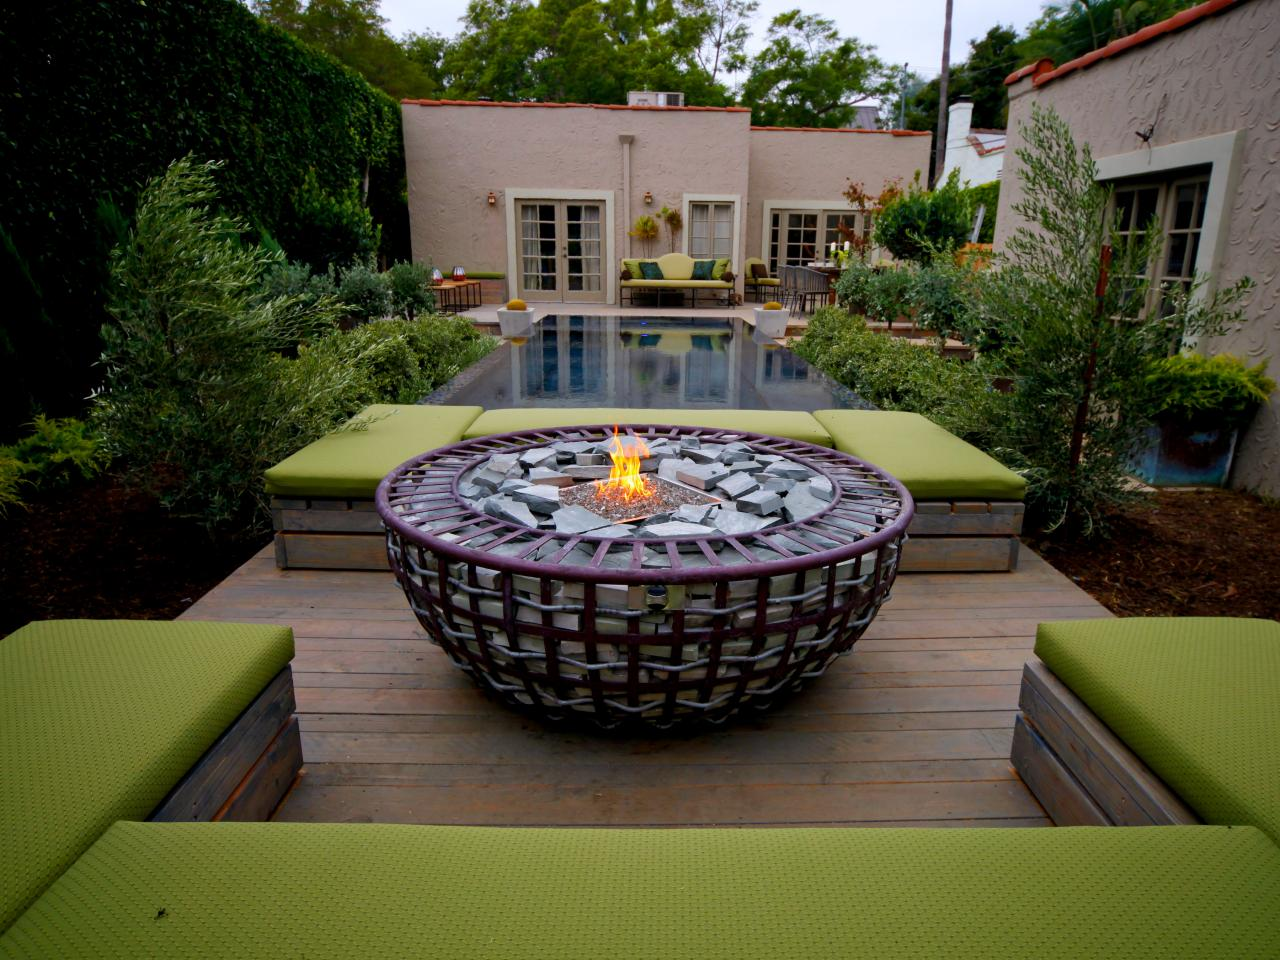 66 fire pit and outdoor fireplace ideas diy network blog for Buy outdoor fire pit